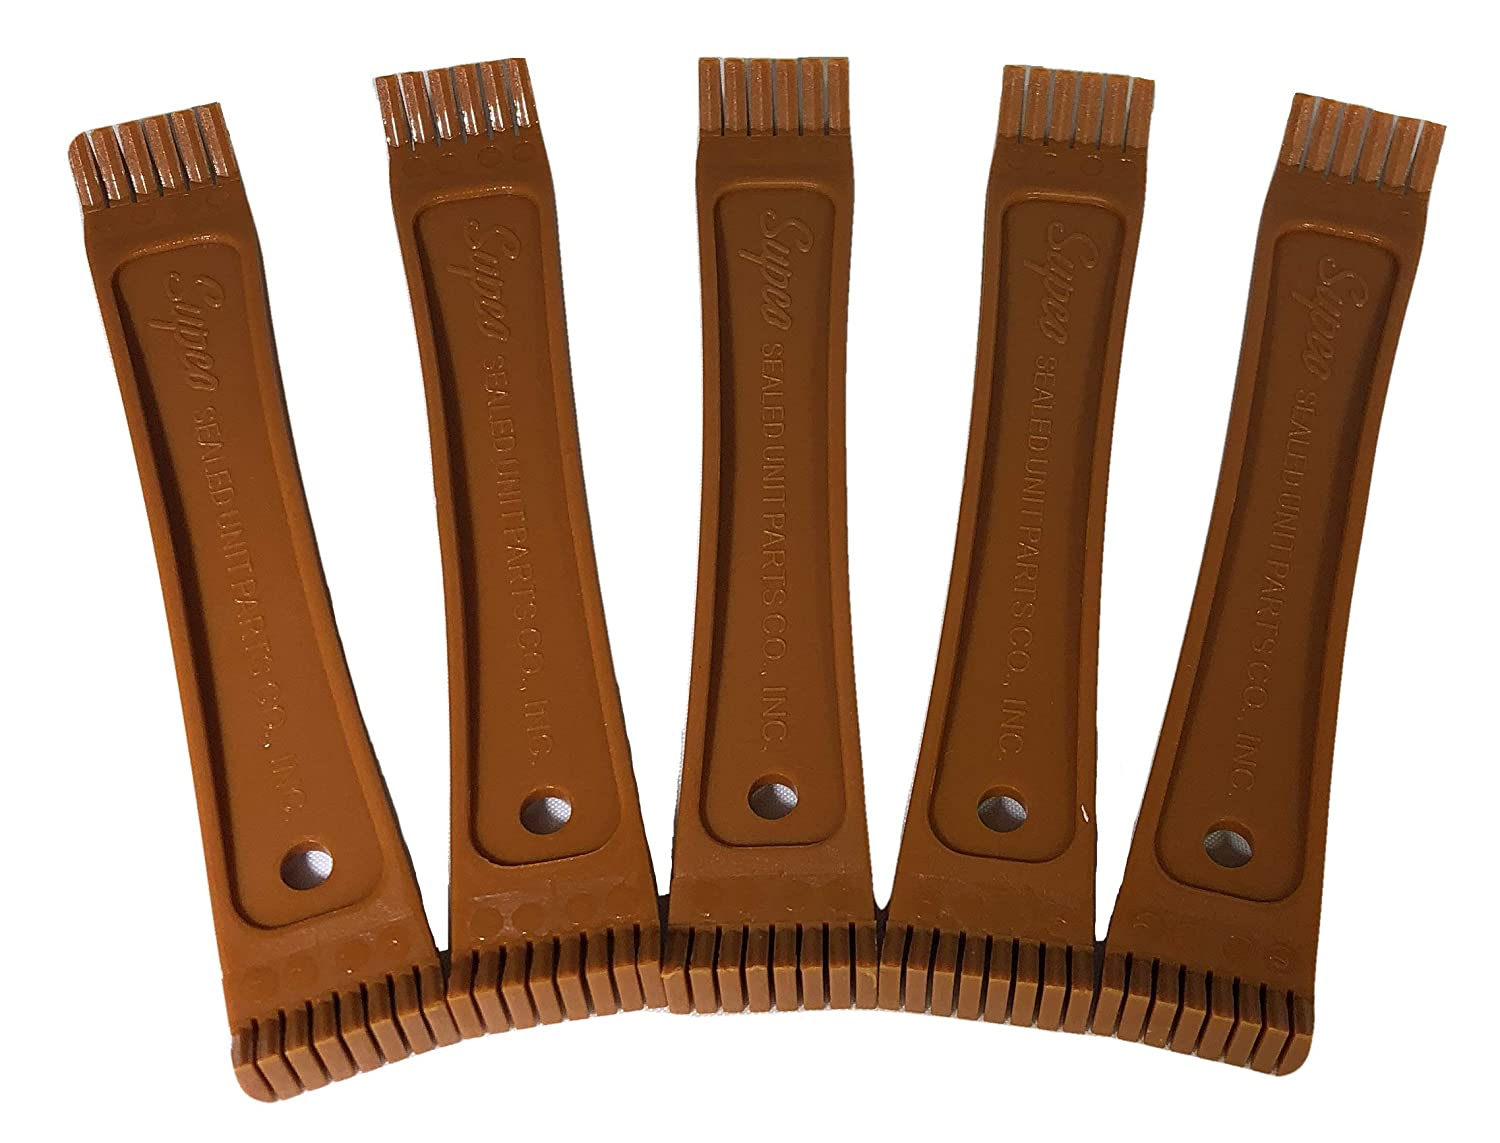 Supco Fin Combs, 8 & 10 Fins Per Inch, Model FC0810, 5 Pack Sealed Unit Parts Co. Inc.